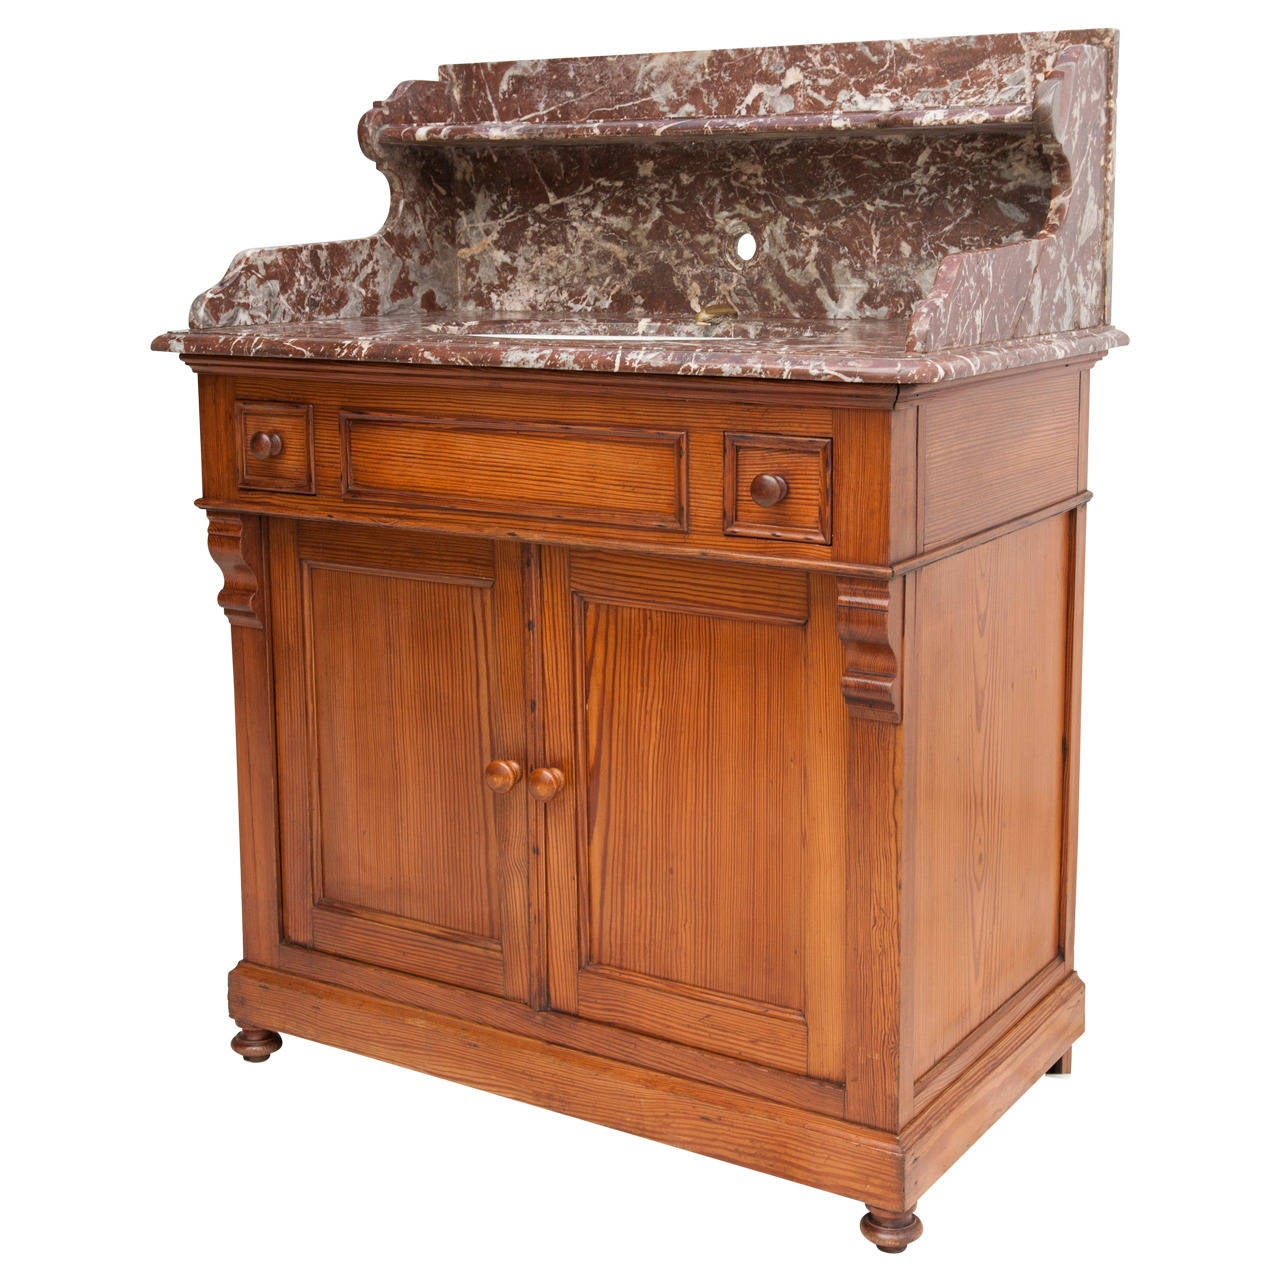 antique french vanity cabinet with marble top and porcelain swivel